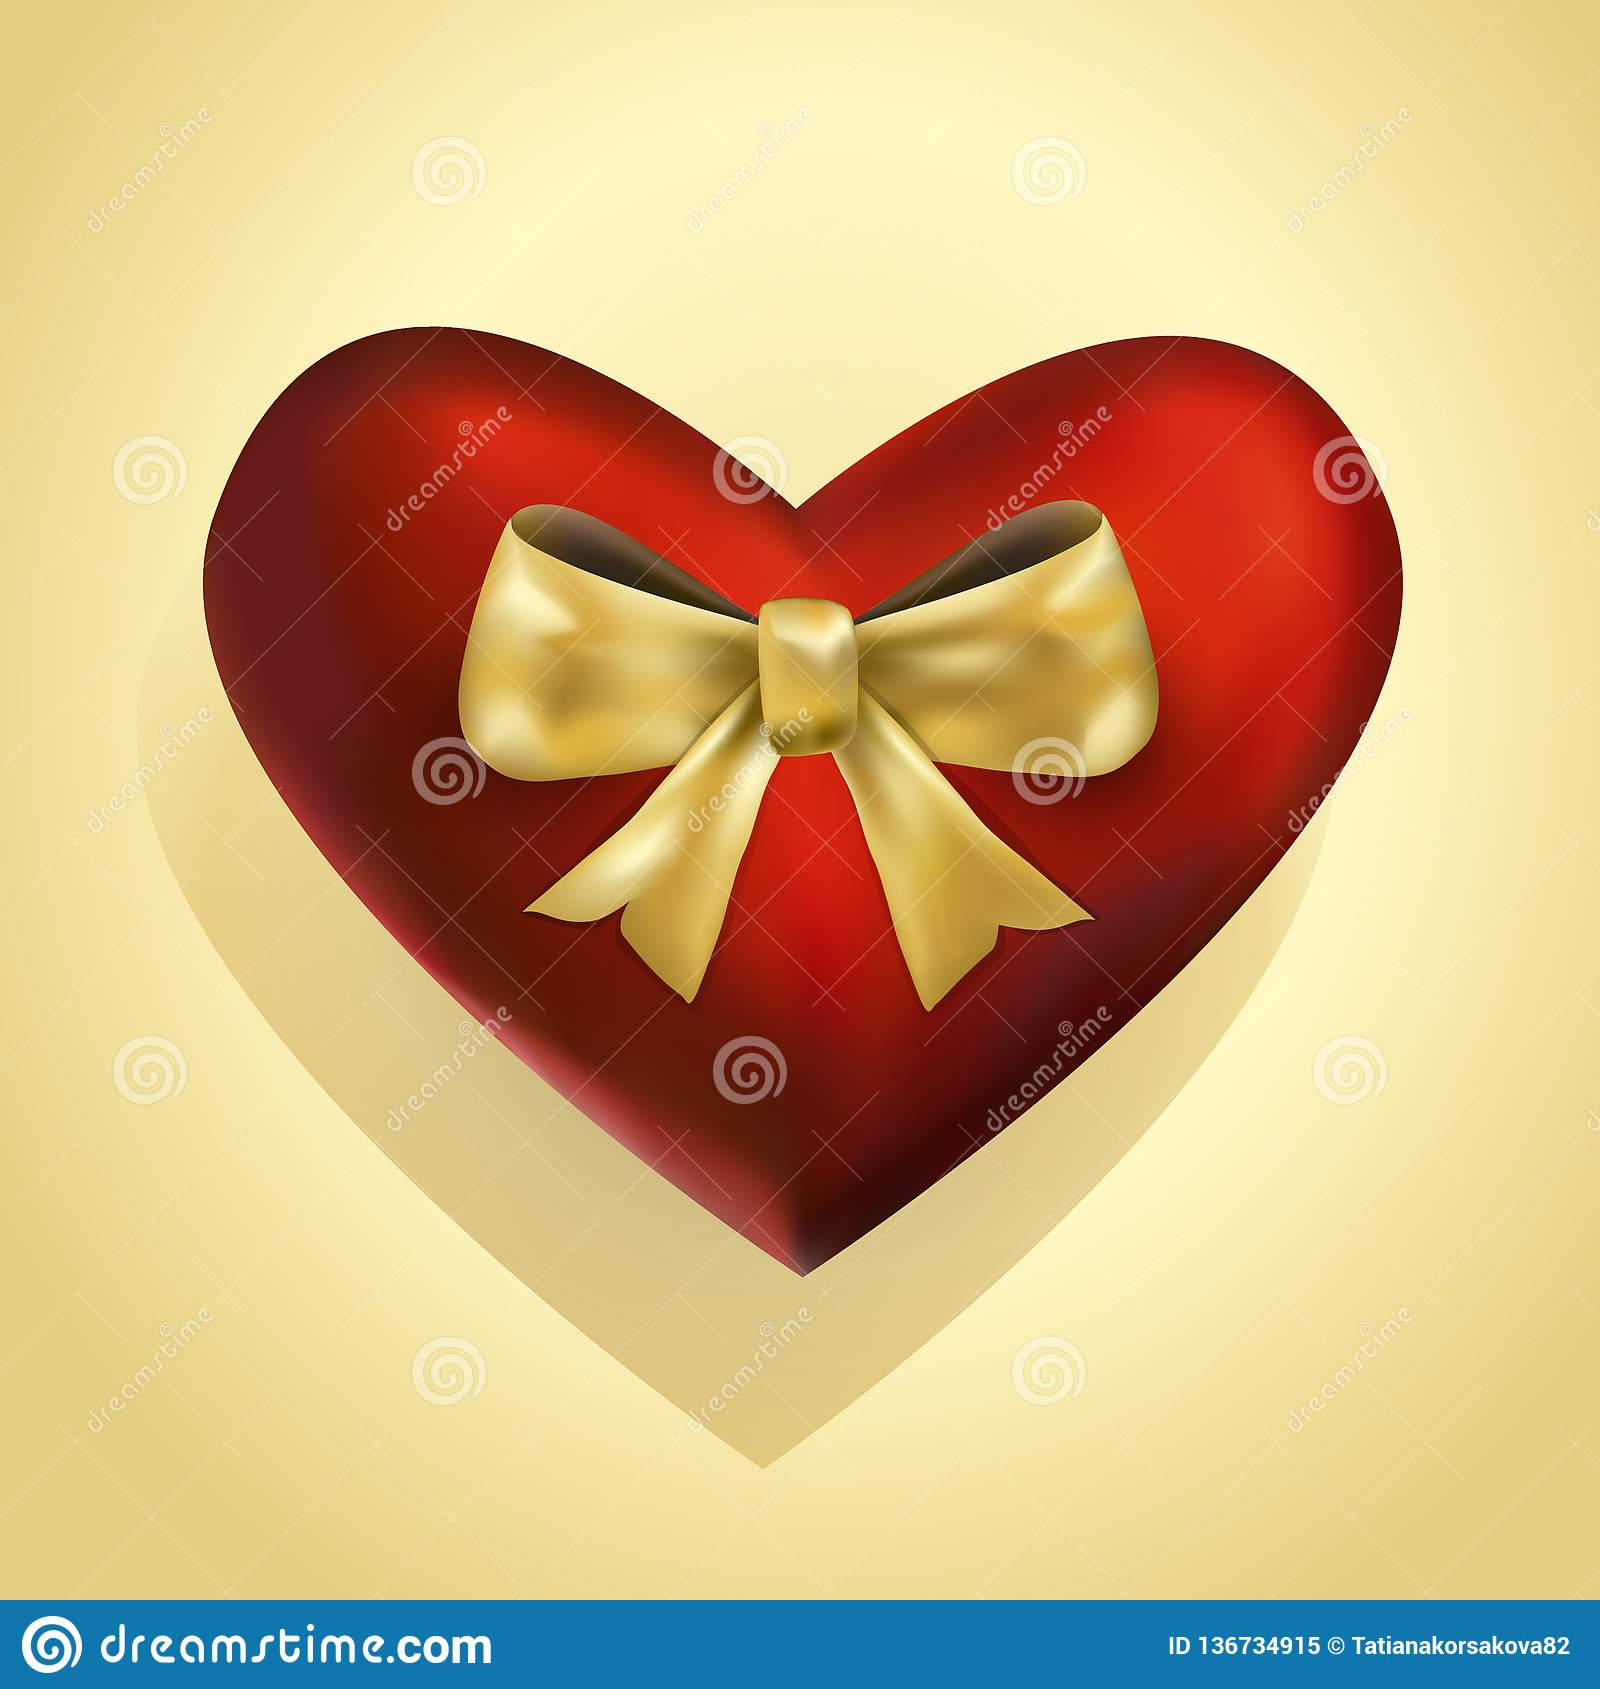 Luxury 3d heart with golden bowed ribbon